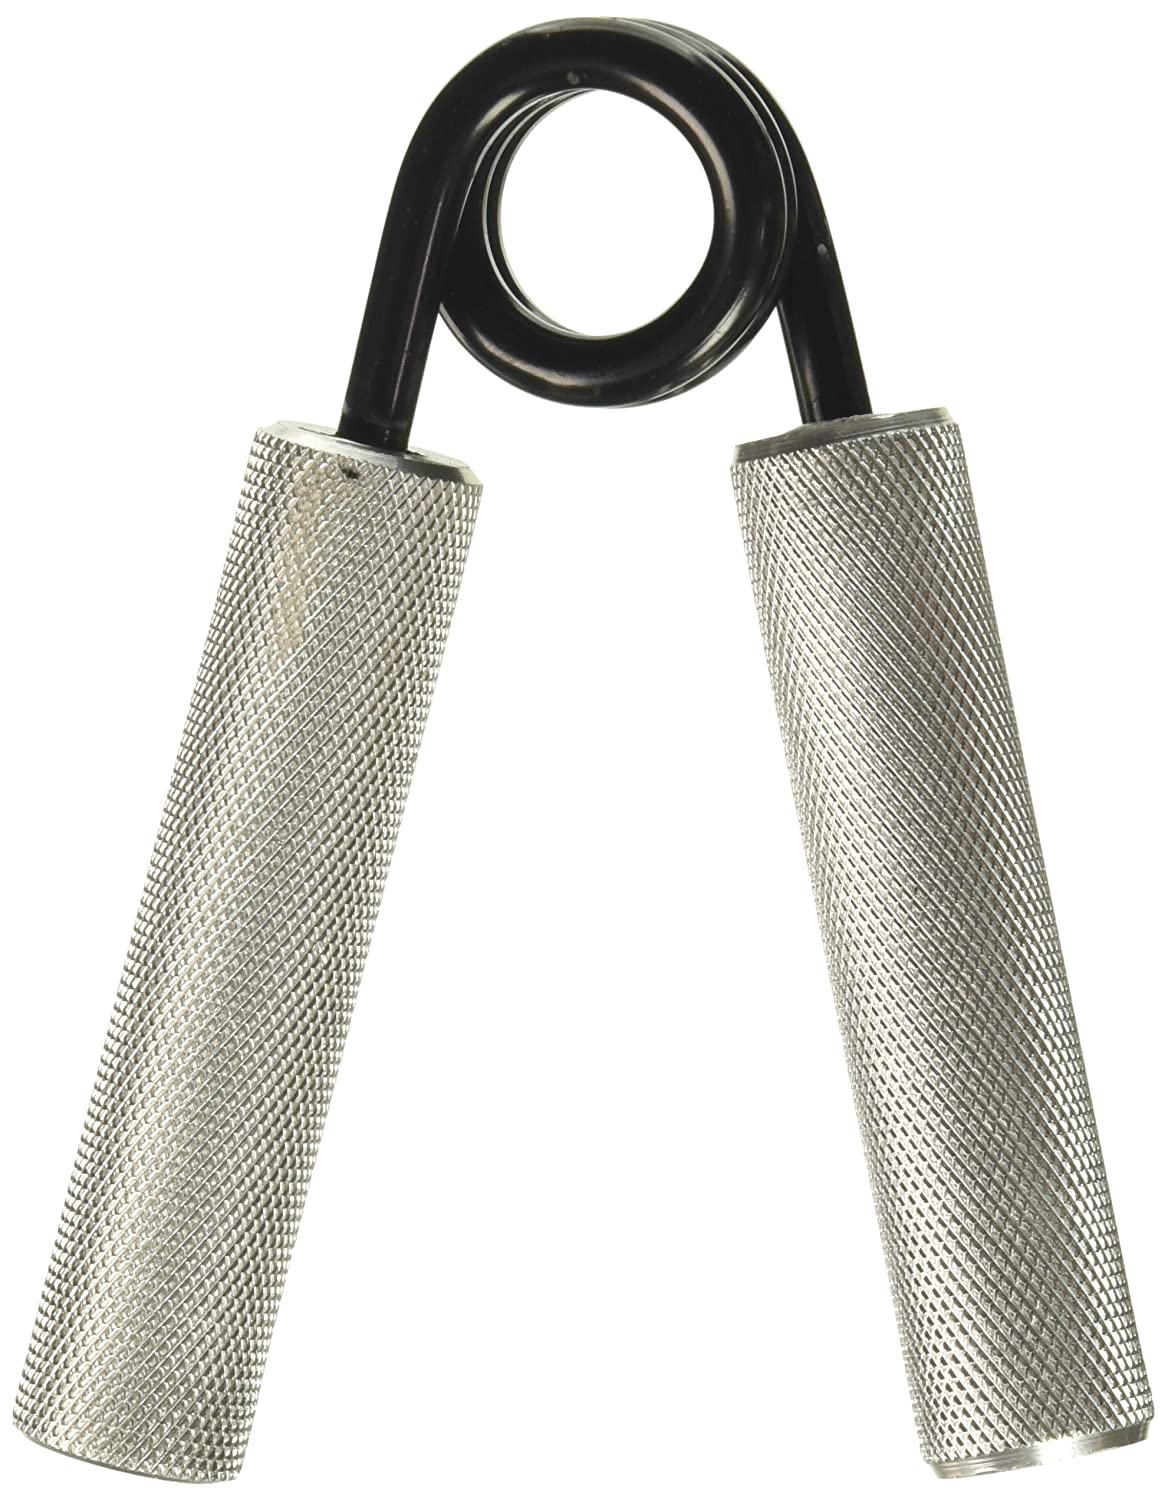 Black Mountain Products Hand and Forearm Exercise Grip Strengthener, 100 lb